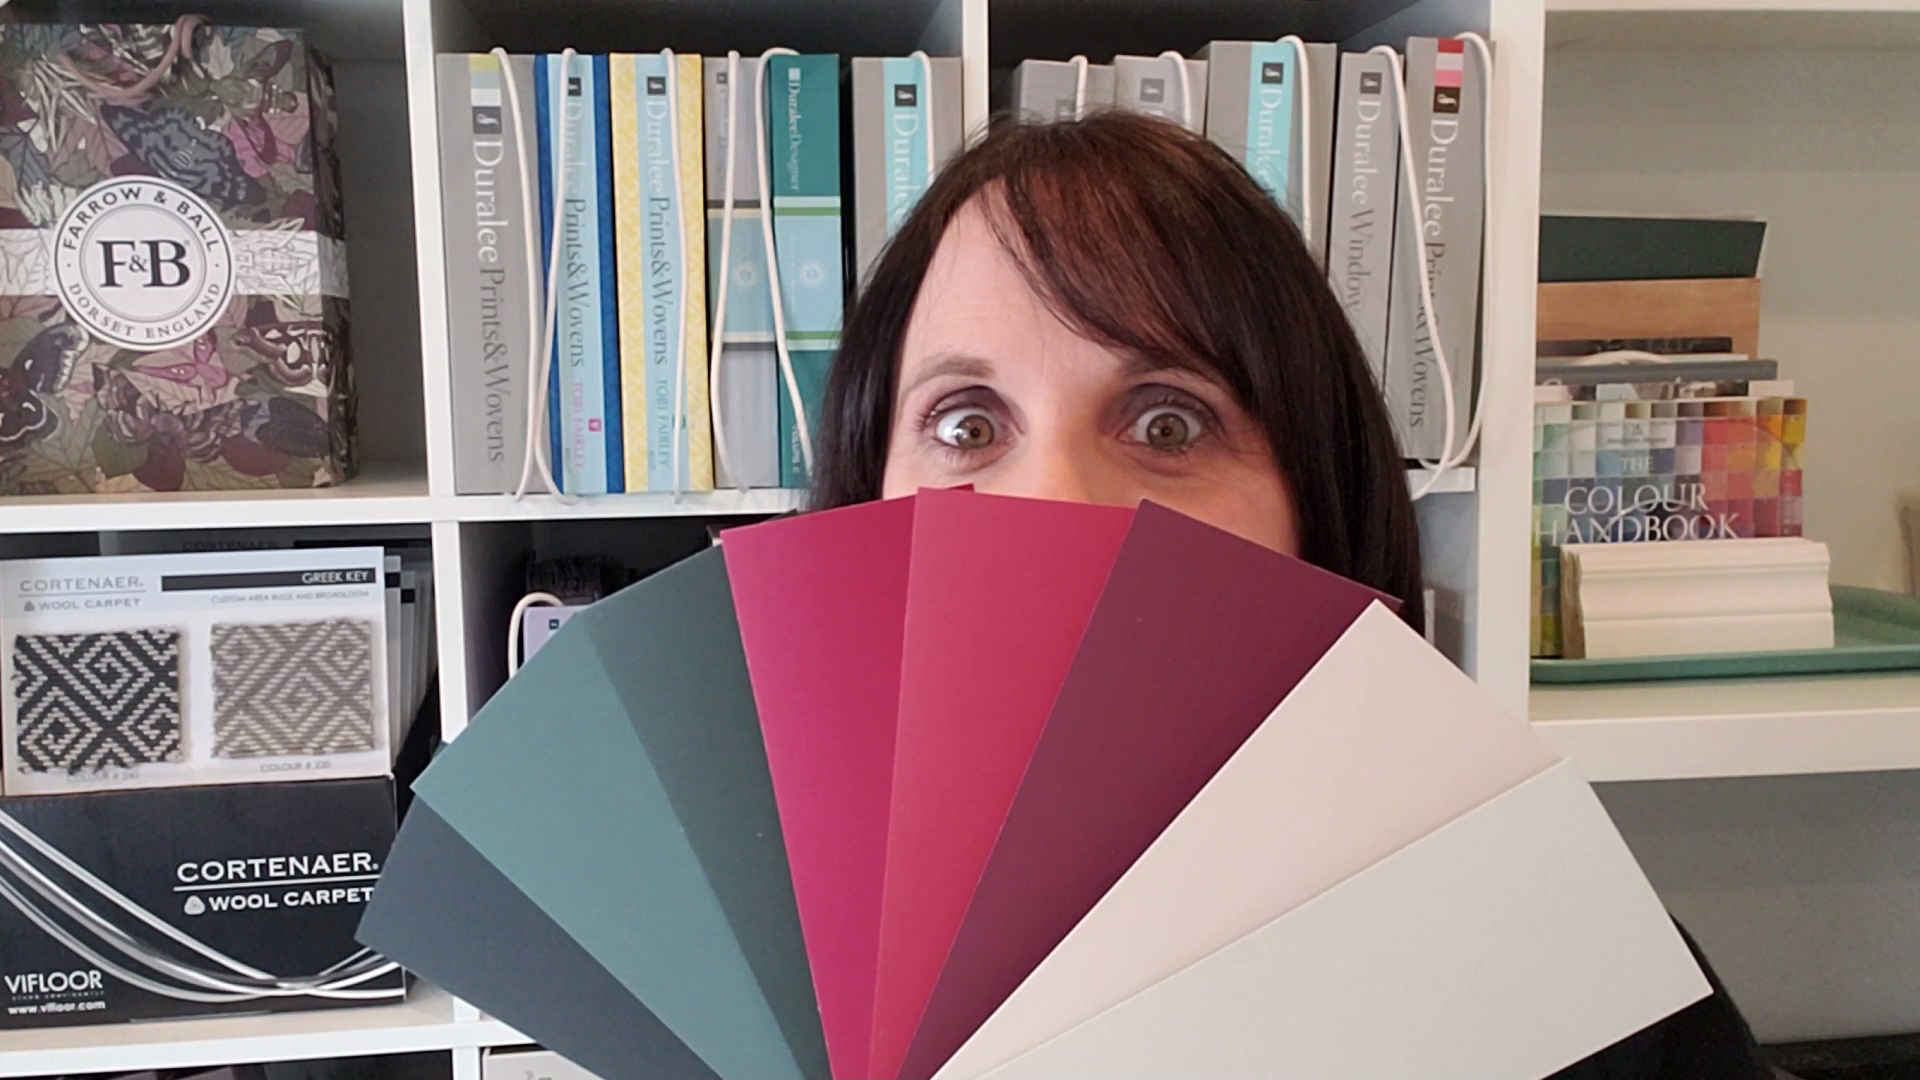 Paint Colour Palette Farrow and Ball with Ikea fabric